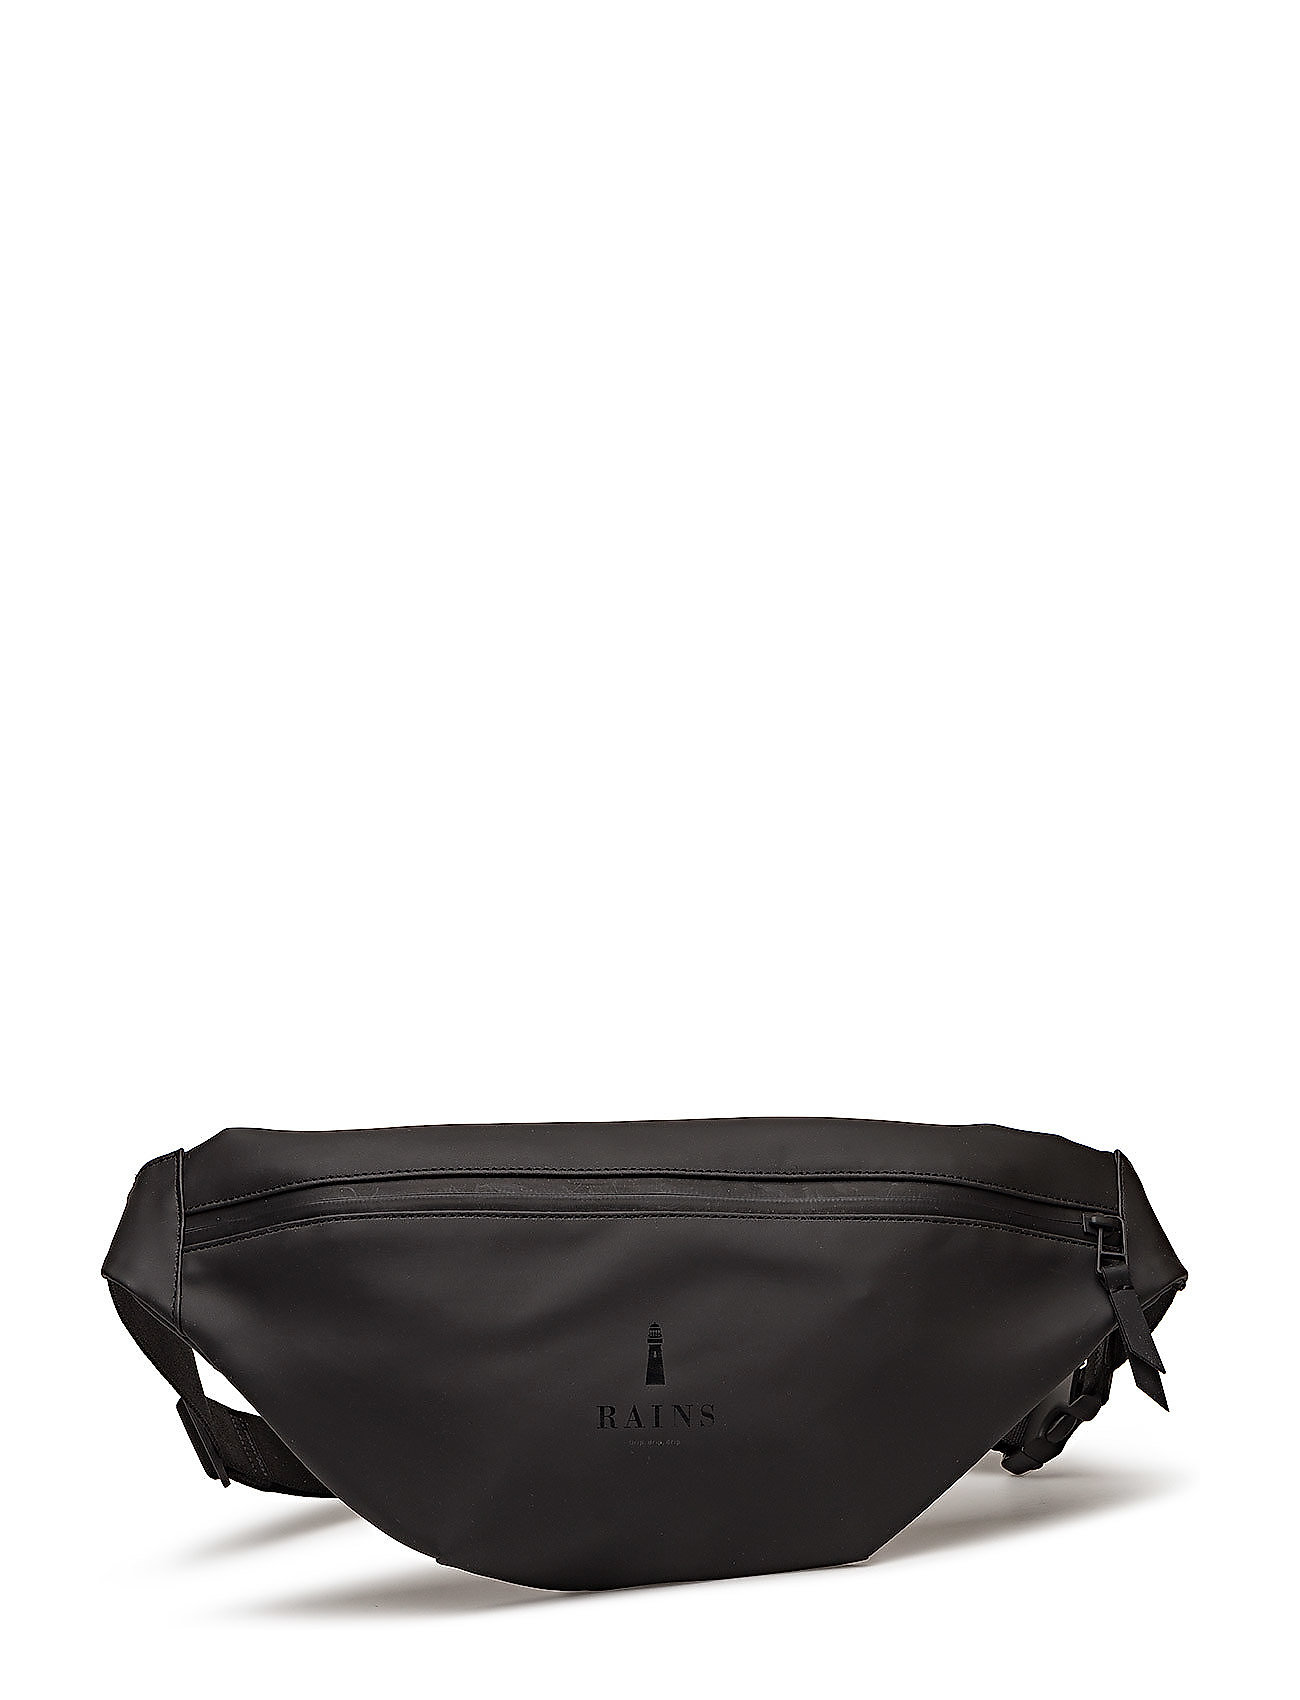 Rains Bum Bag - 01 BLACK